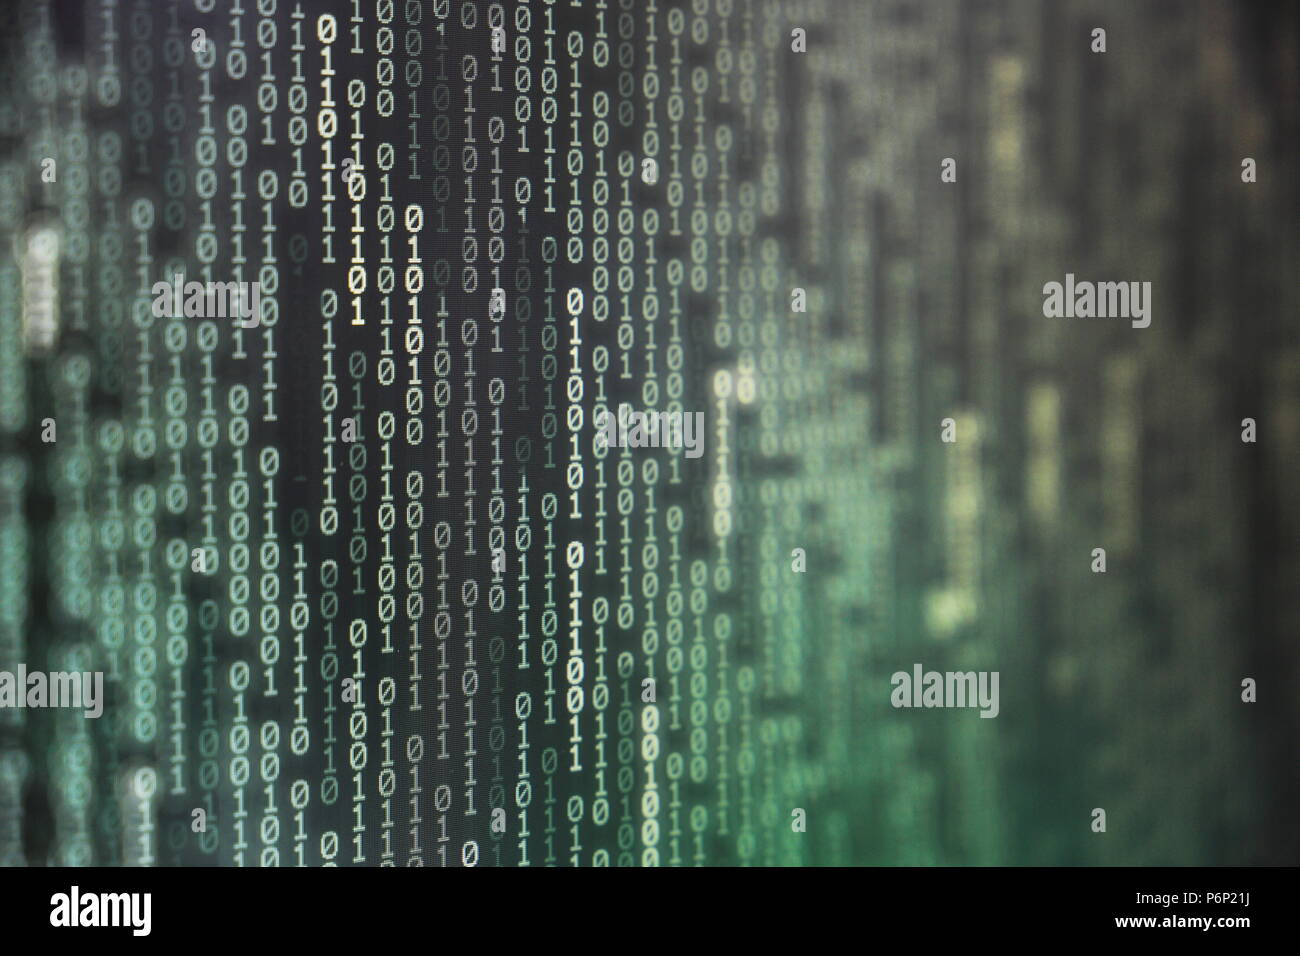 Space Transformation Stock Photos Circuit Board And Binary Code Forming A Mysterious Night Landscape Of Power Big Data Information Bit On Computer Monitor Screen Display Green